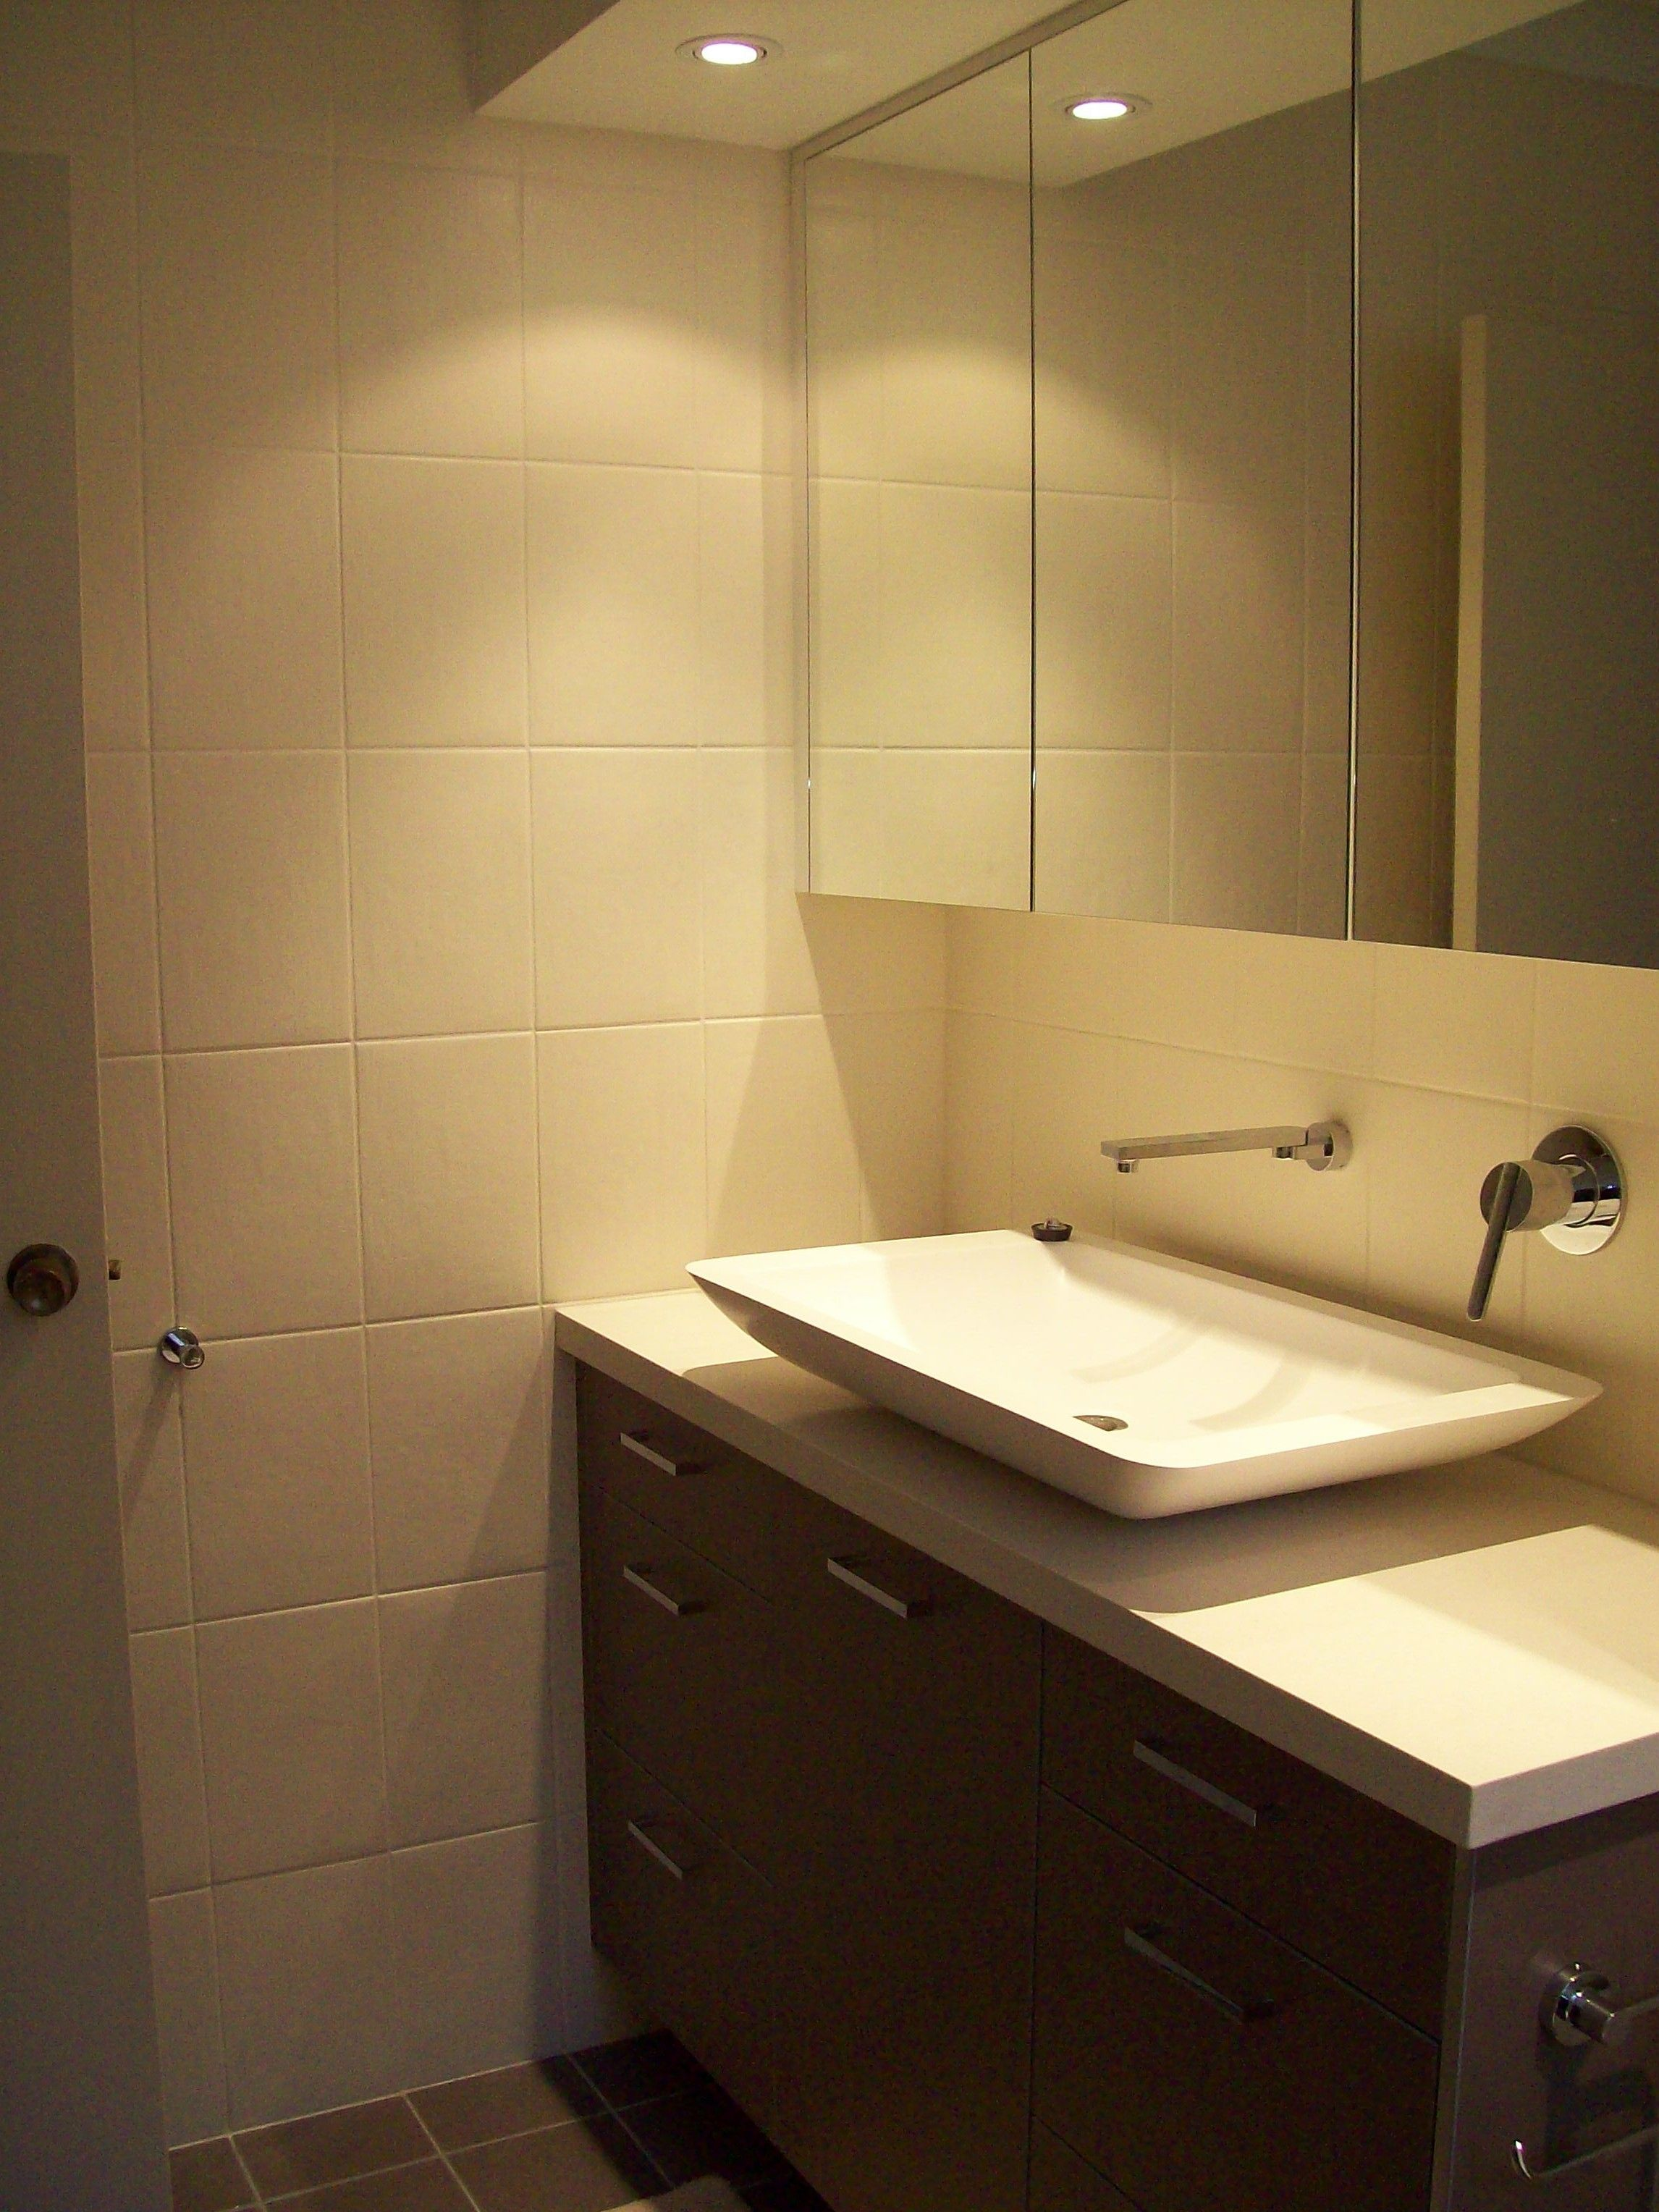 Recessed Shaving Cabinets Vanity Shaving Cabinet And Recessed Lighting Bathroom Ideas In